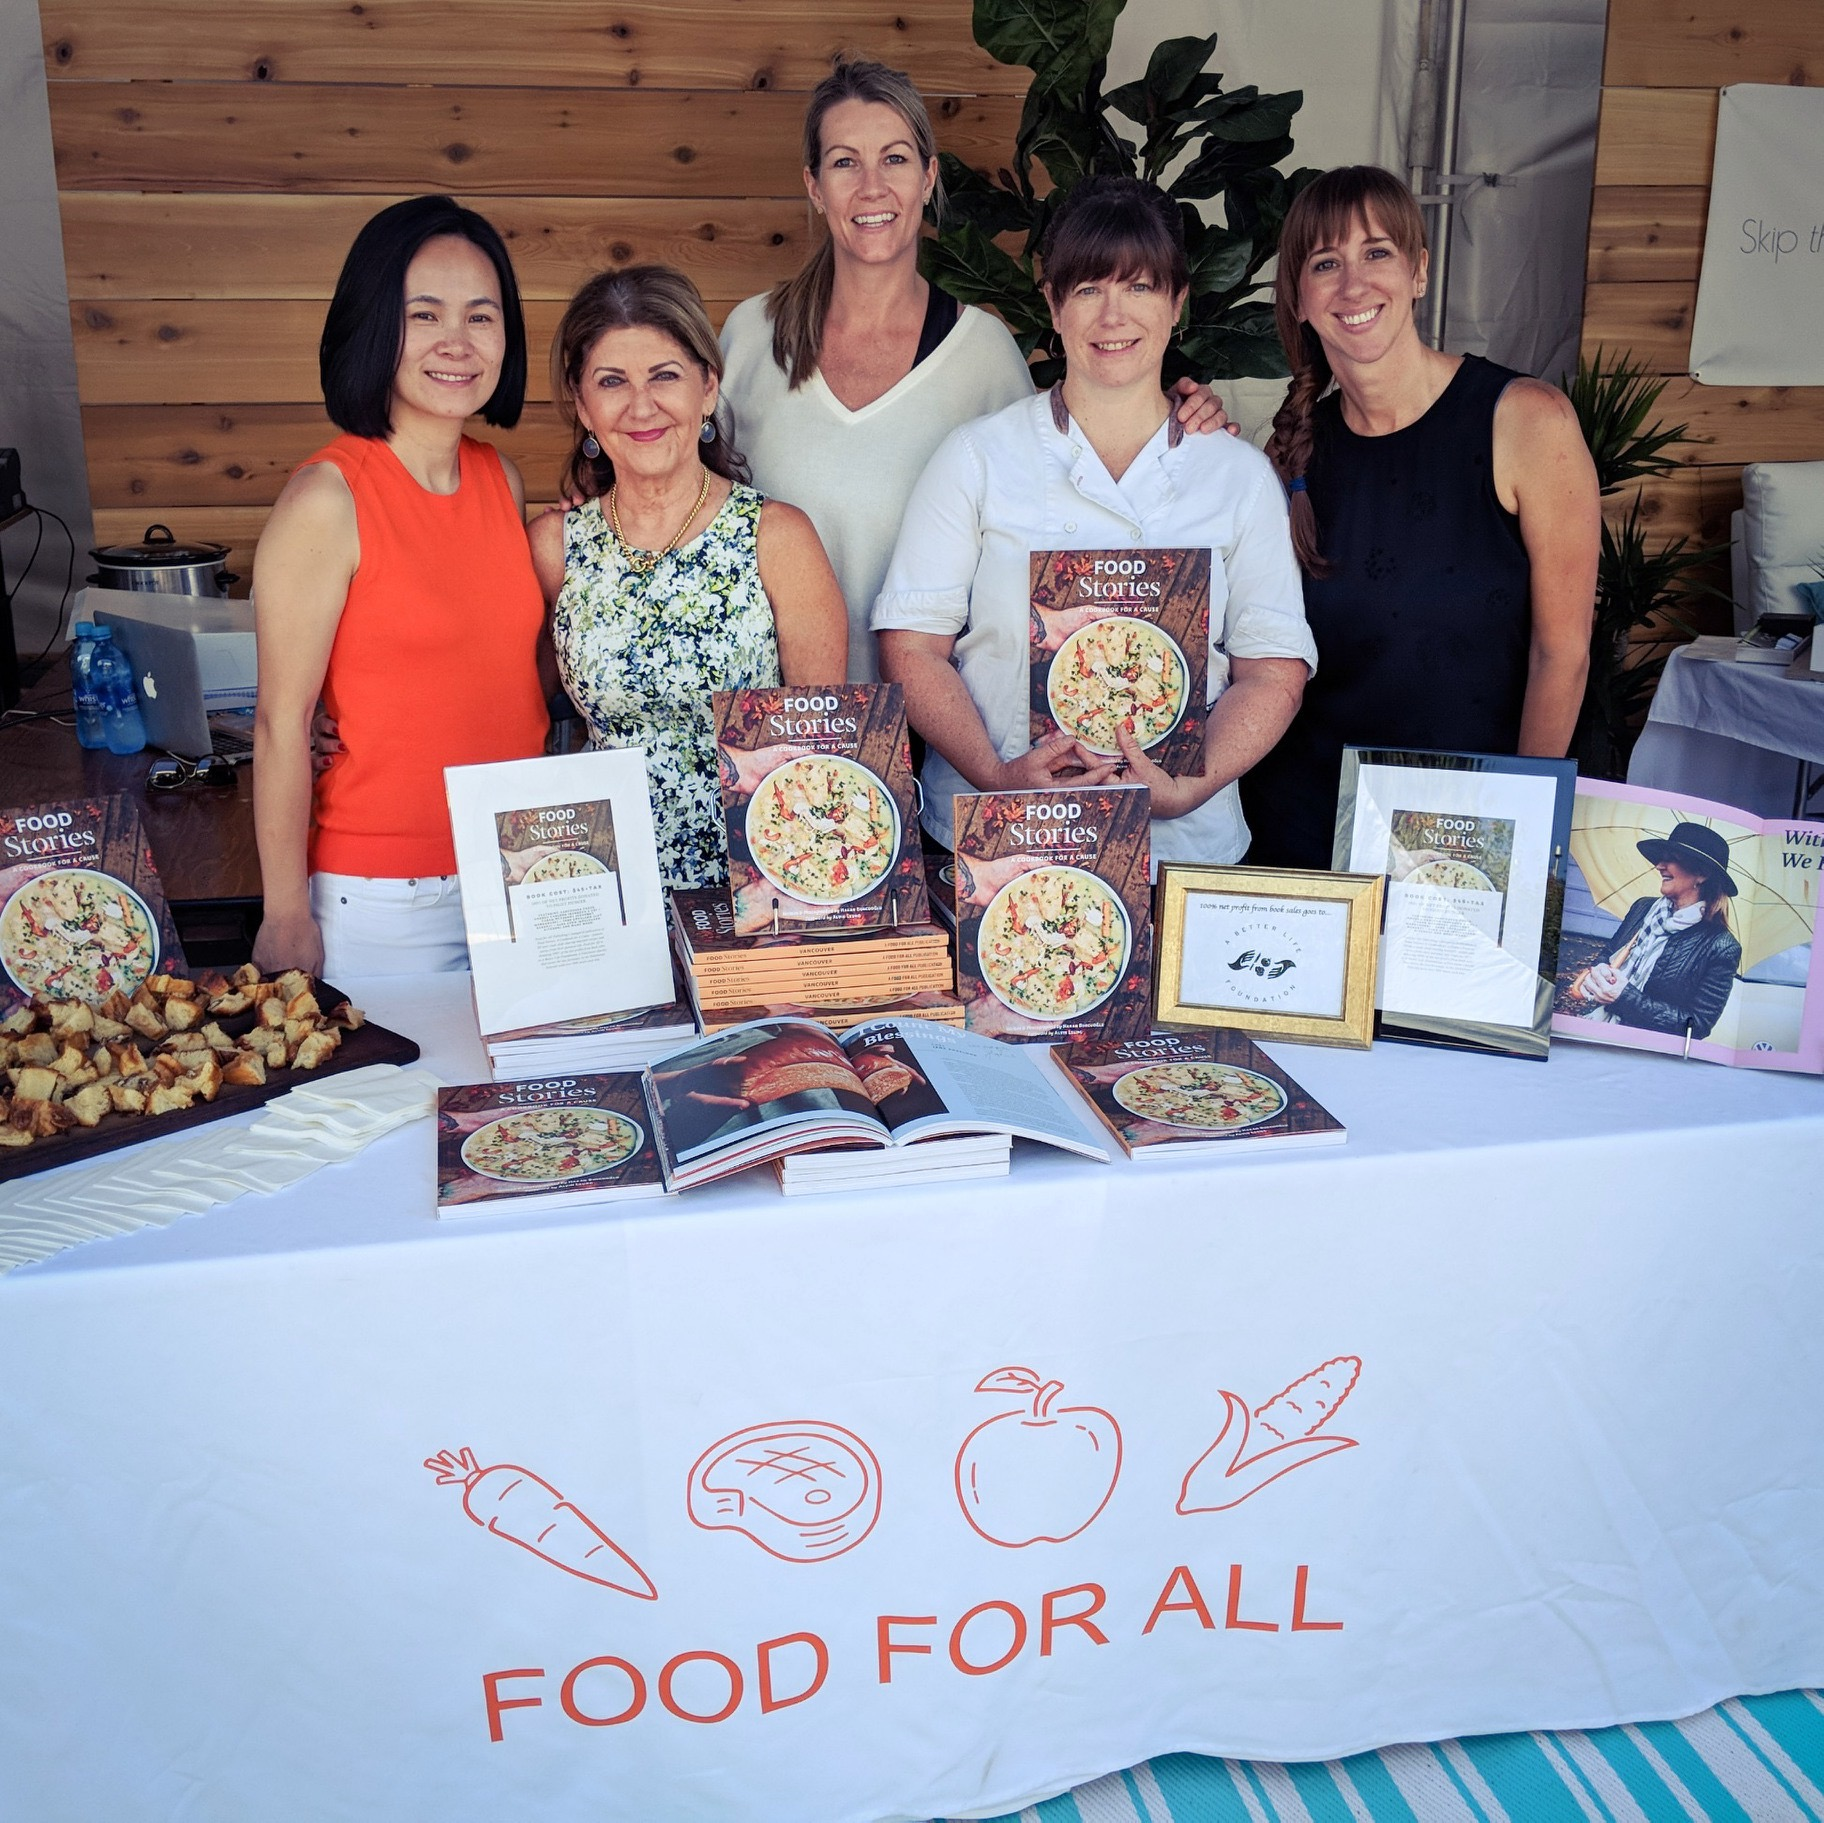 Chef Caren McSherry (Gourmet Warehouse) and Chef Jane Copeland (Lift Breakfast Bar) join us at Hollyburn Country Club to promote Food Stories during the Van Open Tennis event.